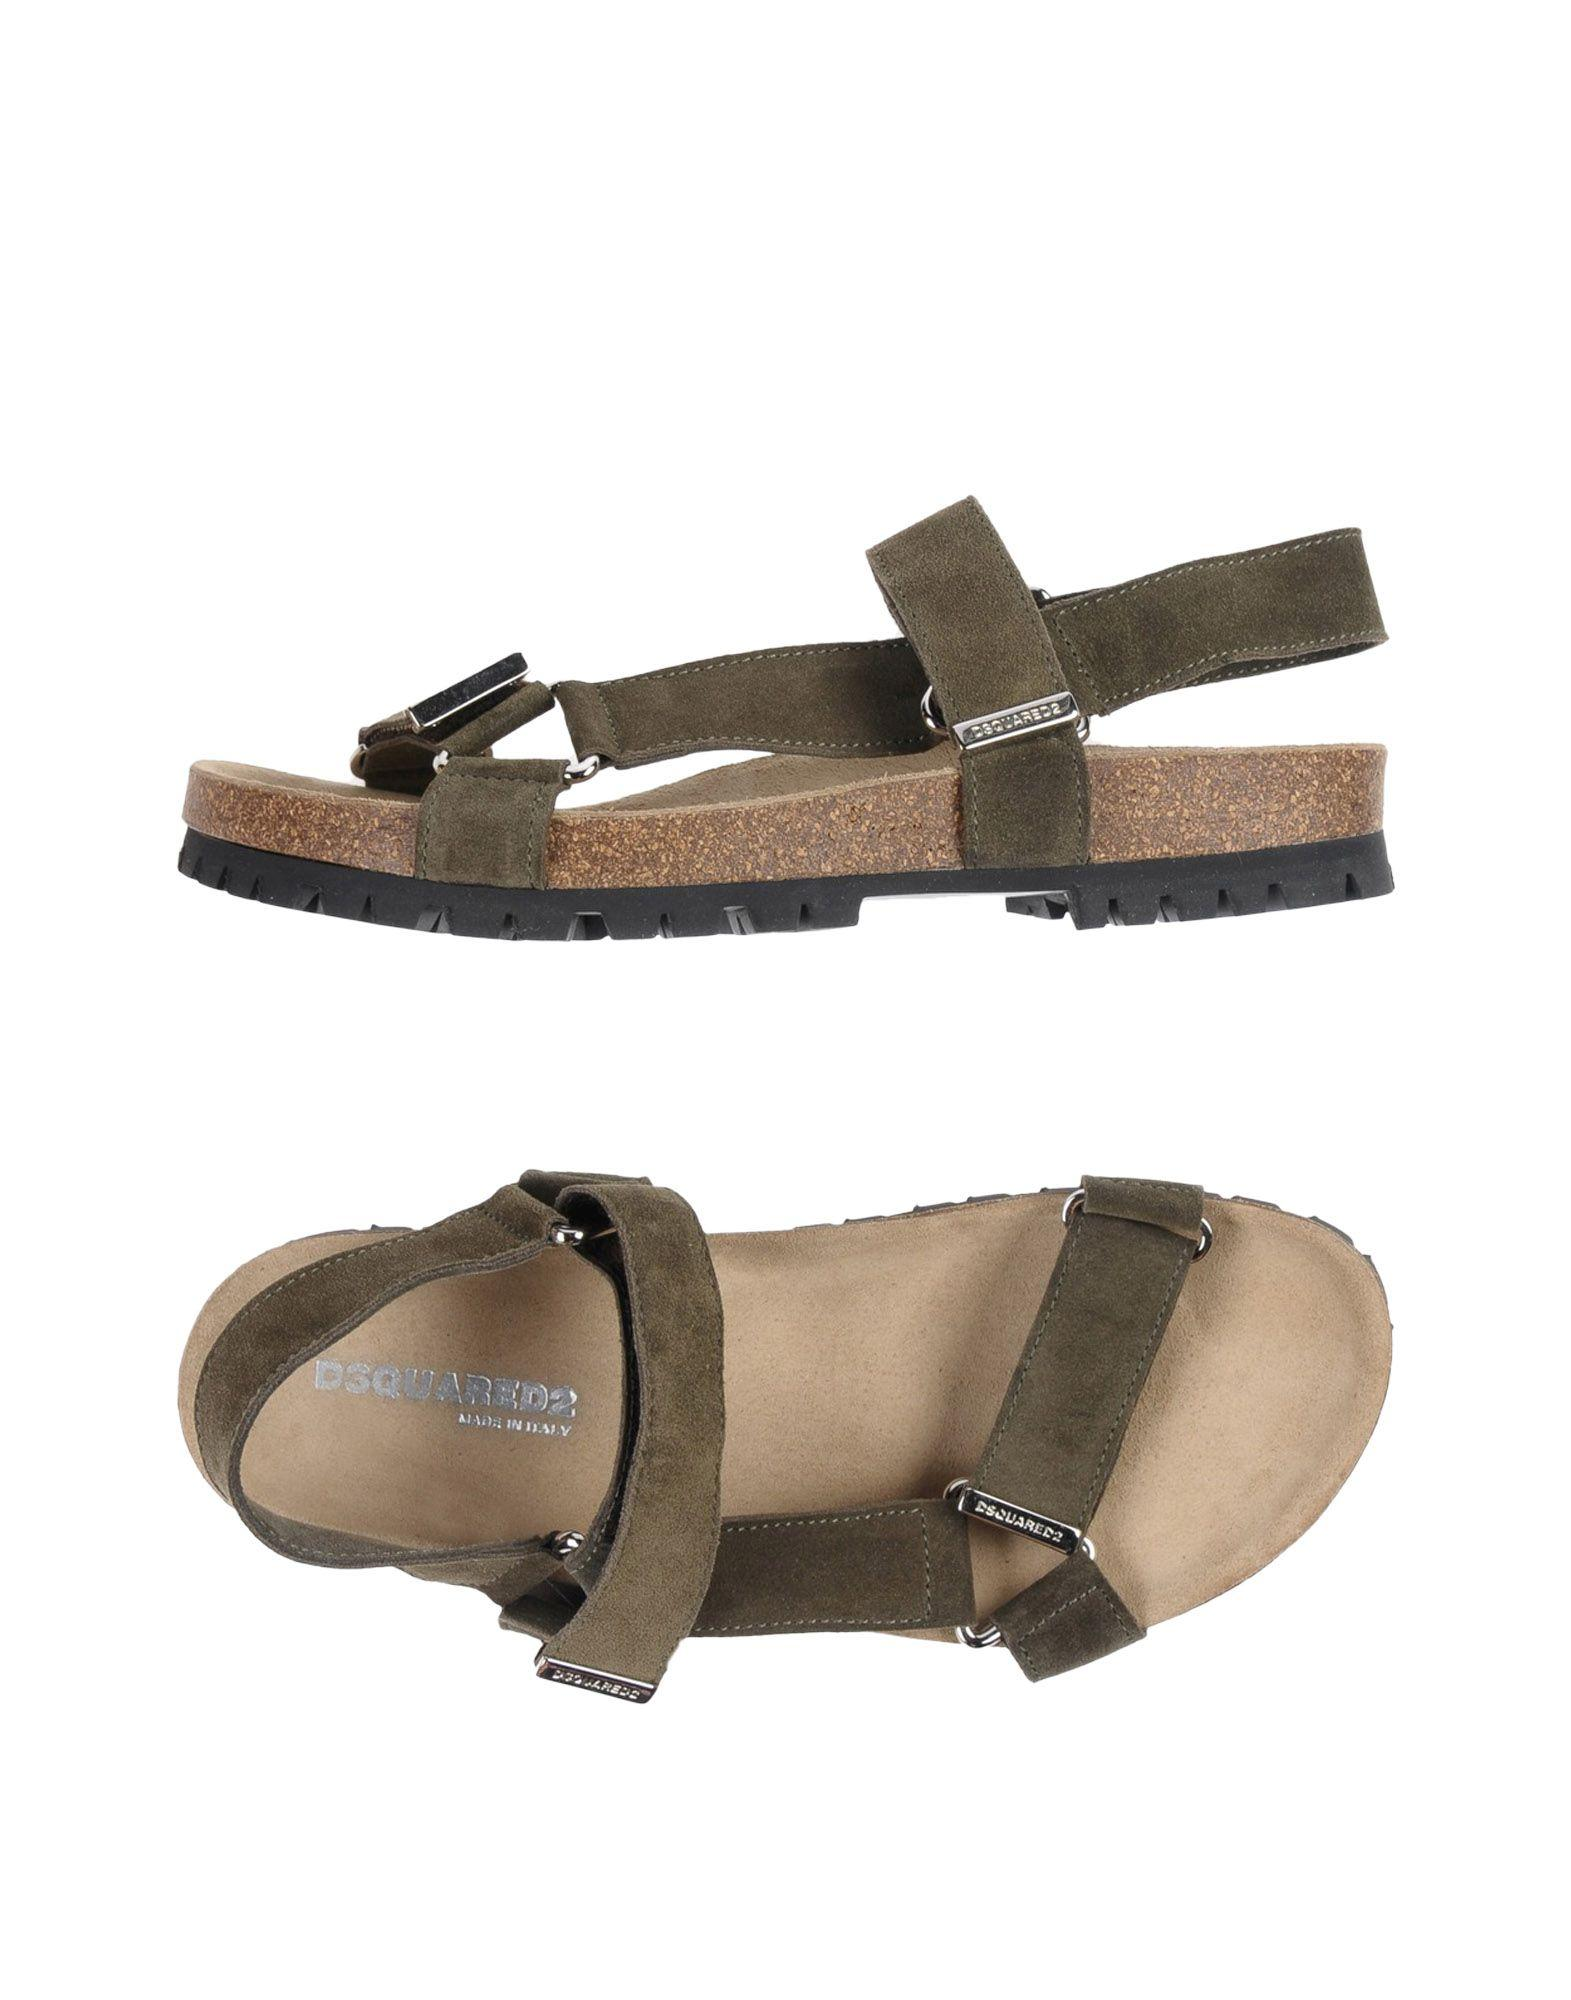 Dsquared2 Sandals In Military Green